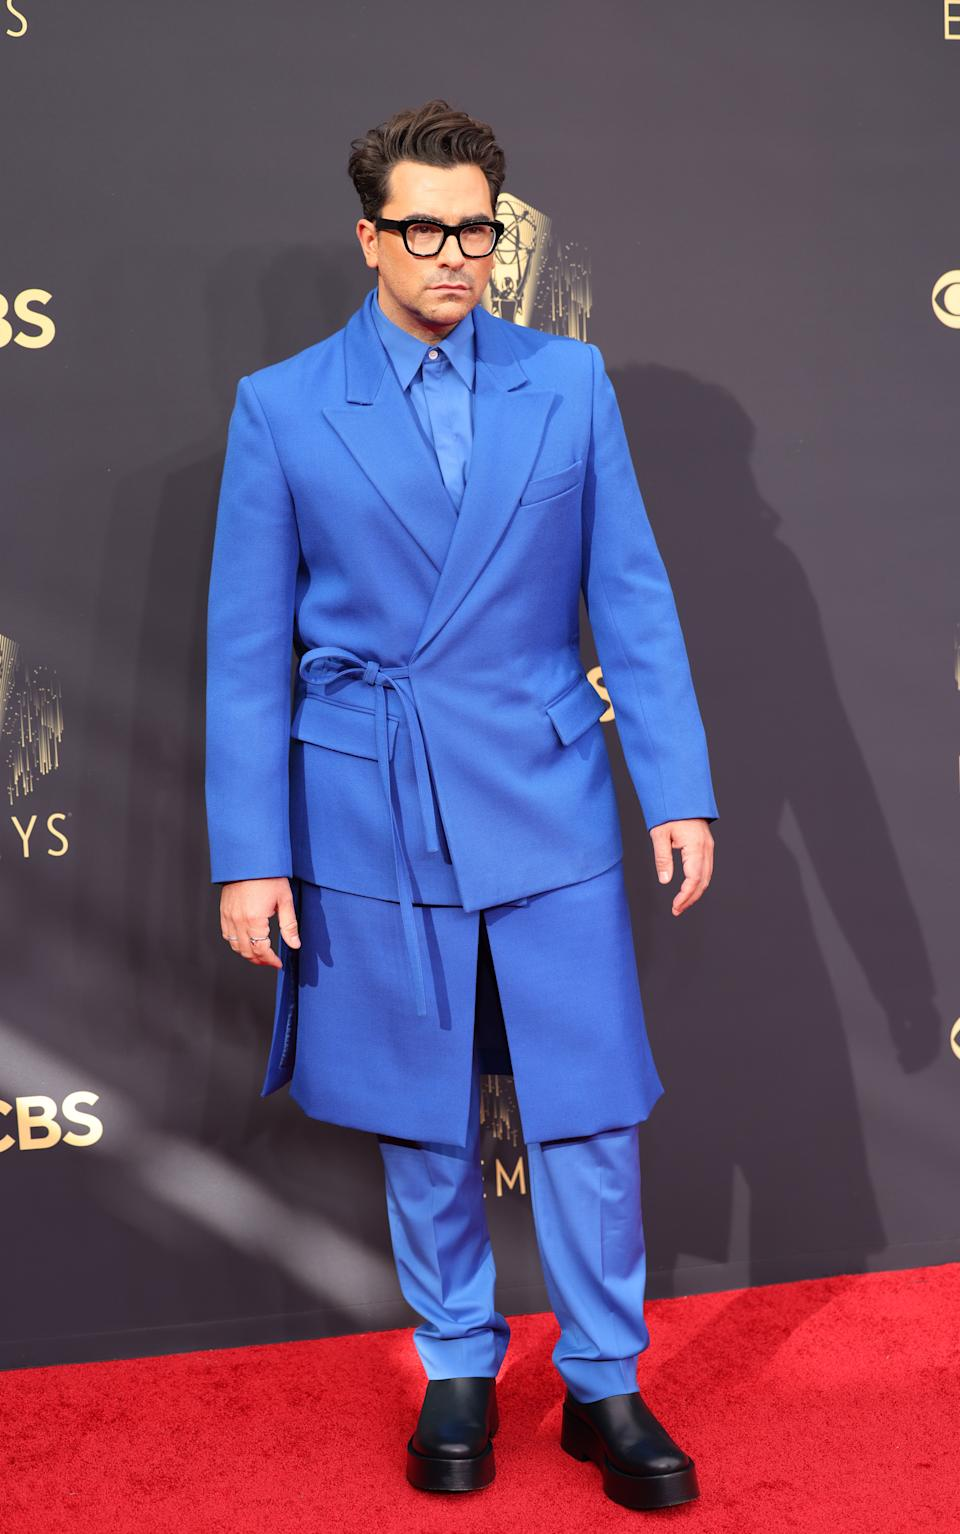 Dan Levy wears a blue suit on the red carpet for the 73rd Annual Emmy Awards taking place at LA Live on Sunday, Sept. 19, 2021 in Los Angeles, CA. (Jay L. Clendenin / Los Angeles Times via Getty Images)